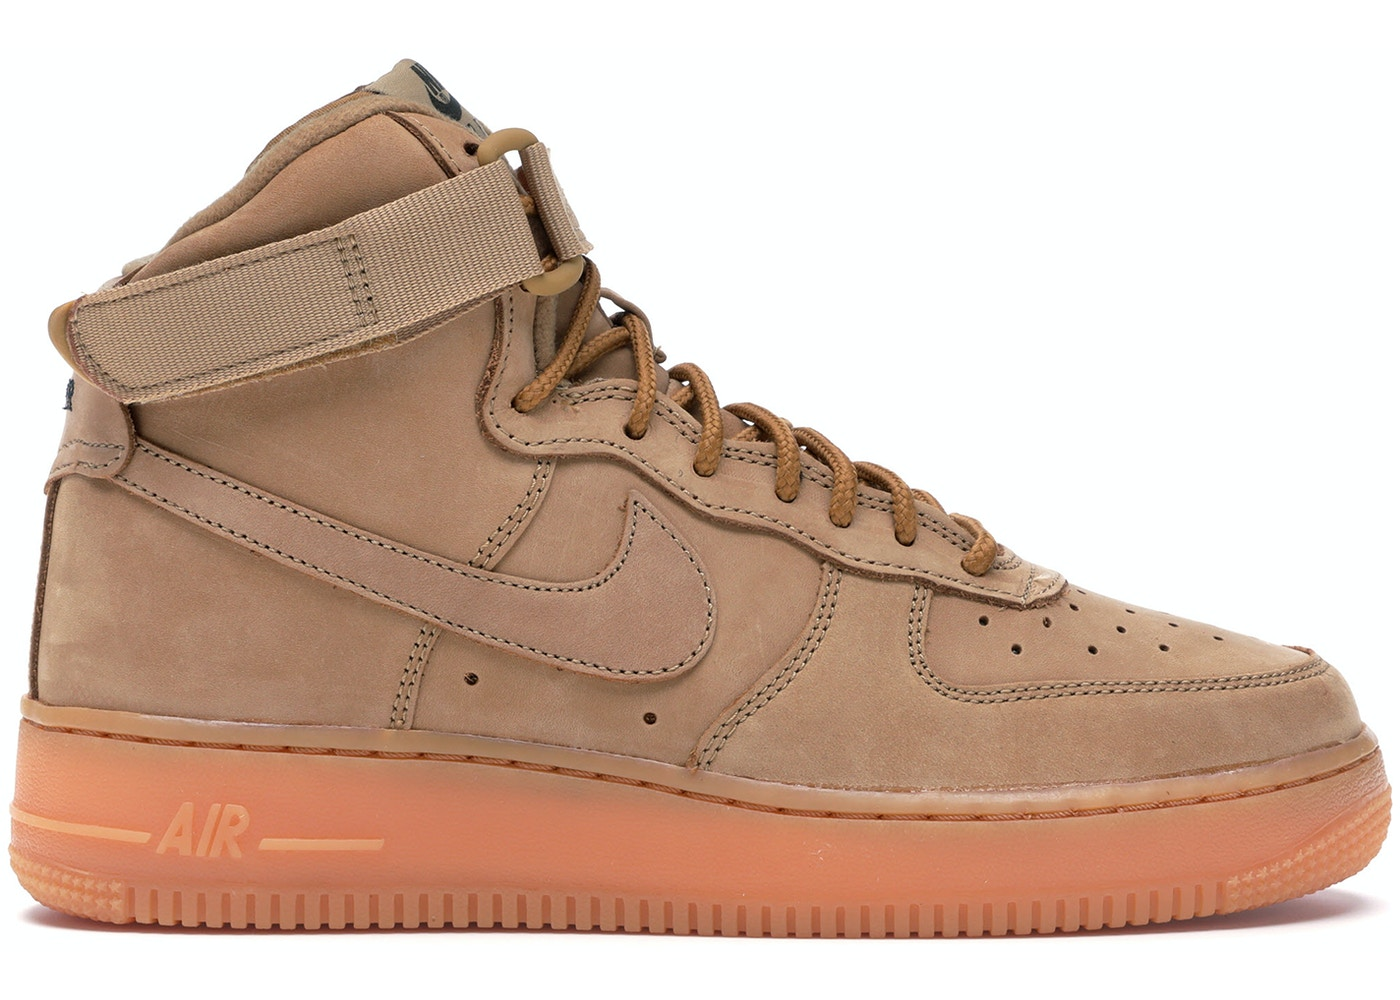 the best attitude af081 b86b2 Air Force 1 High Flax 2017 (GS)